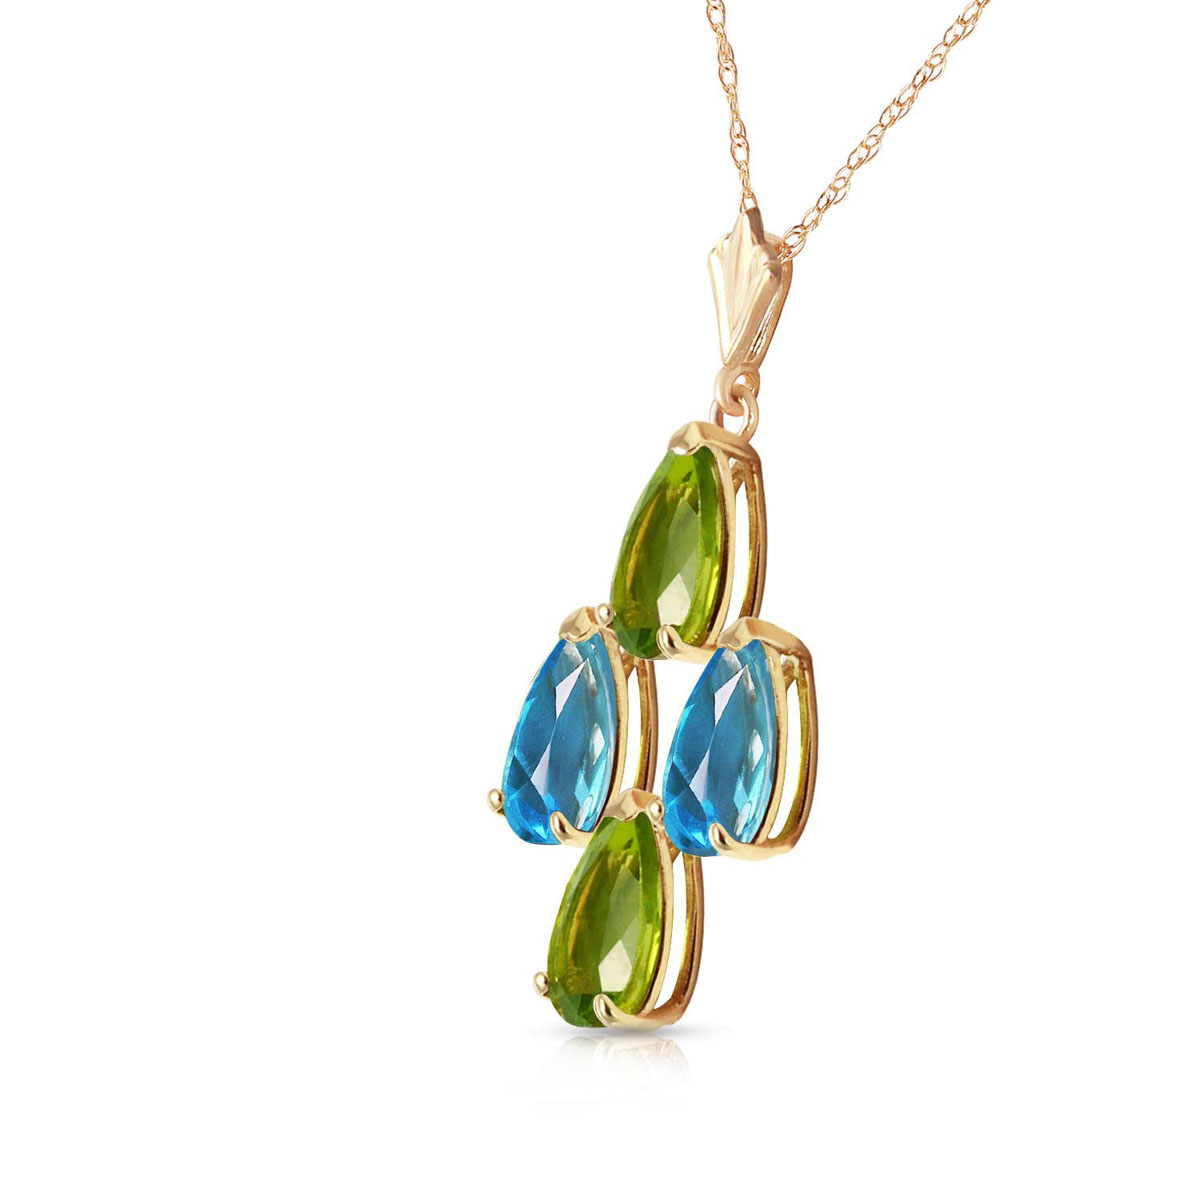 Peridot & Blue Topaz Chandelier Pendant Necklace in 9ct Gold